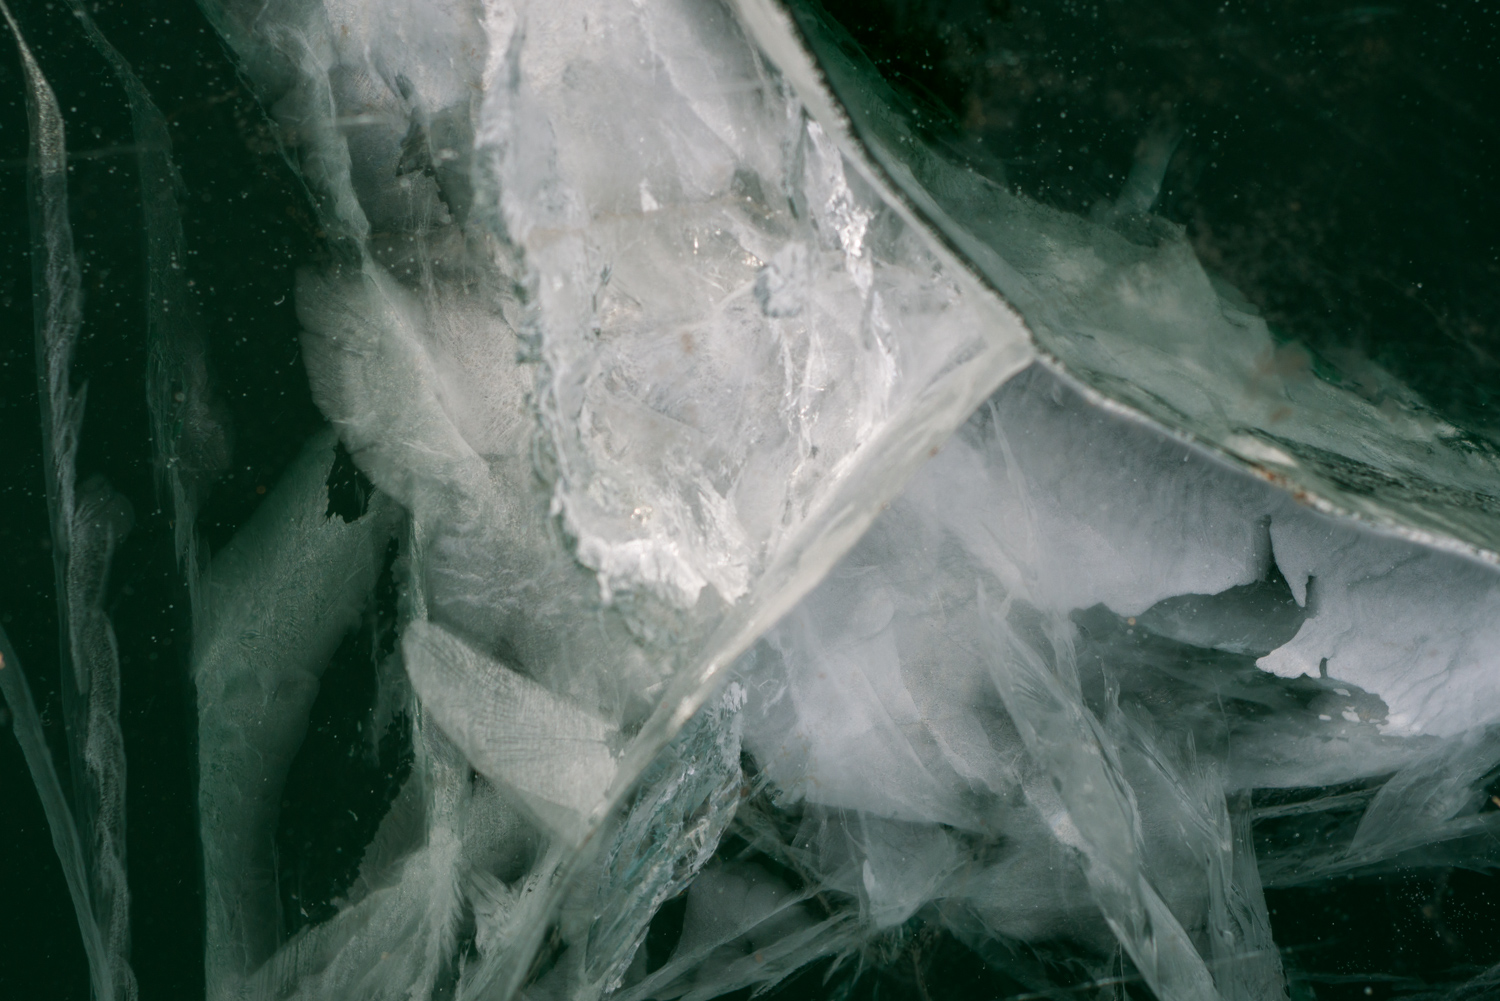 Color Photograph, Ice, Pond, Frozen, Midwest, Interior Design, Wall Art